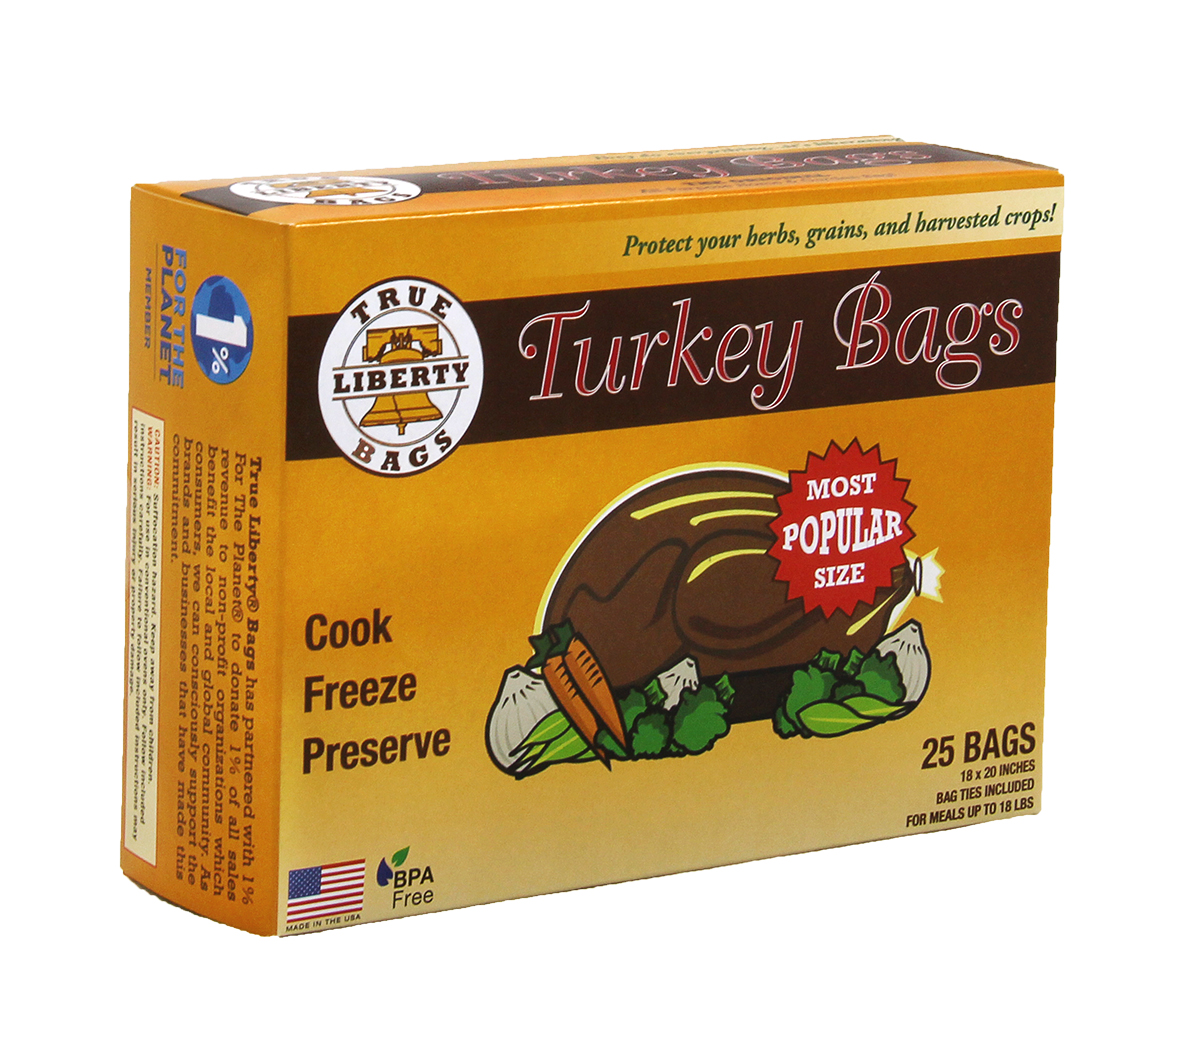 True Liberty Turkey Bags Pack of 25